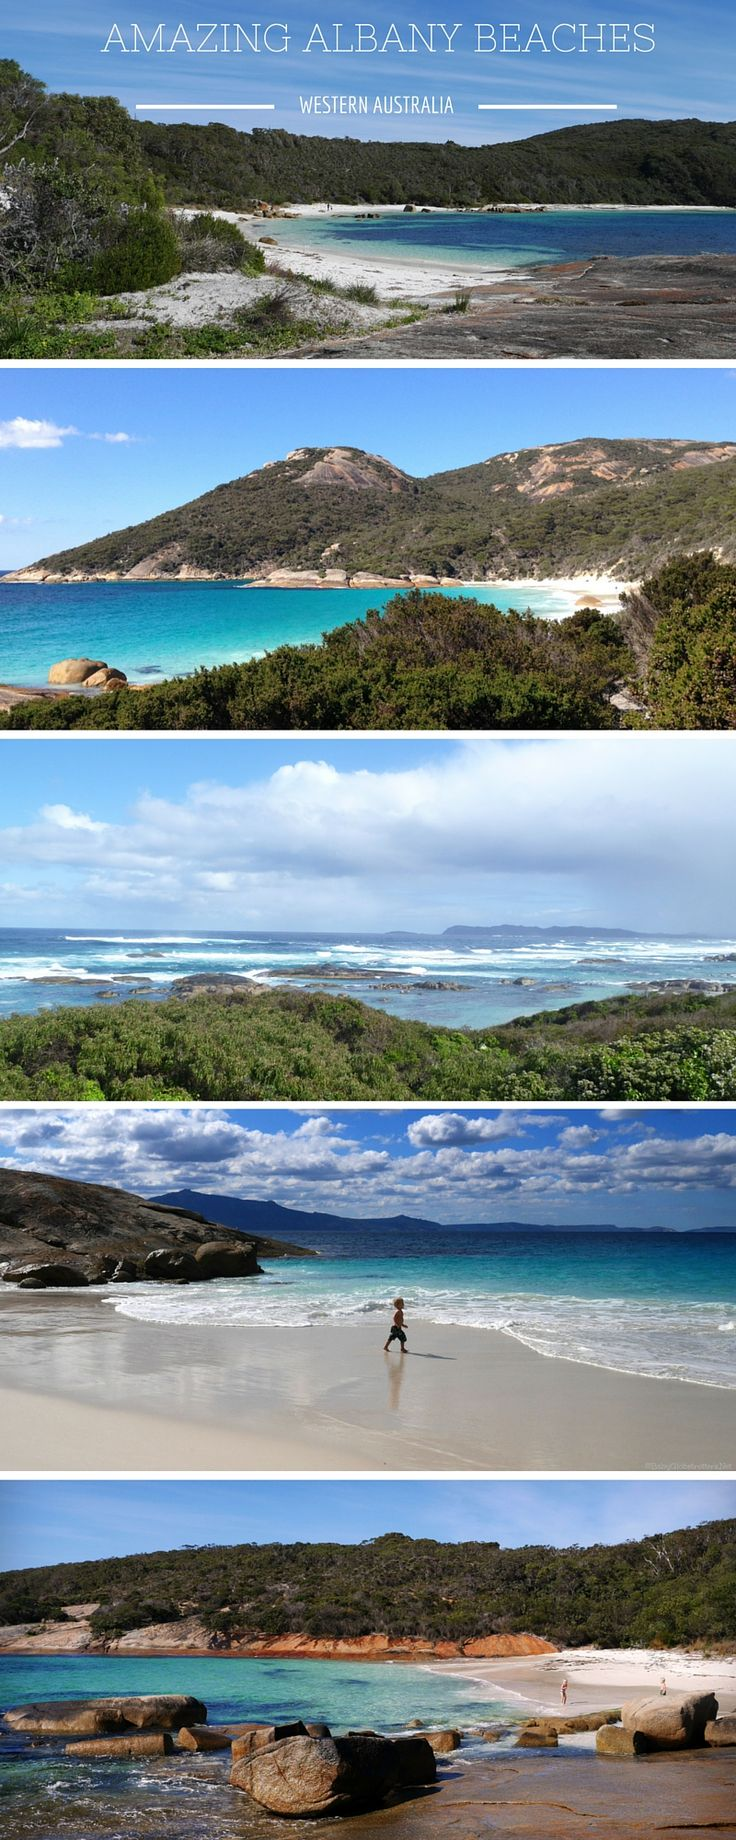 One of the most stunning but undiscovered coast lines in the world. Where the Great Southern Ocean meets the Western Australian coast, come explore the beautiful and utterly amazing beaches of Albany and the Rainbow Coast